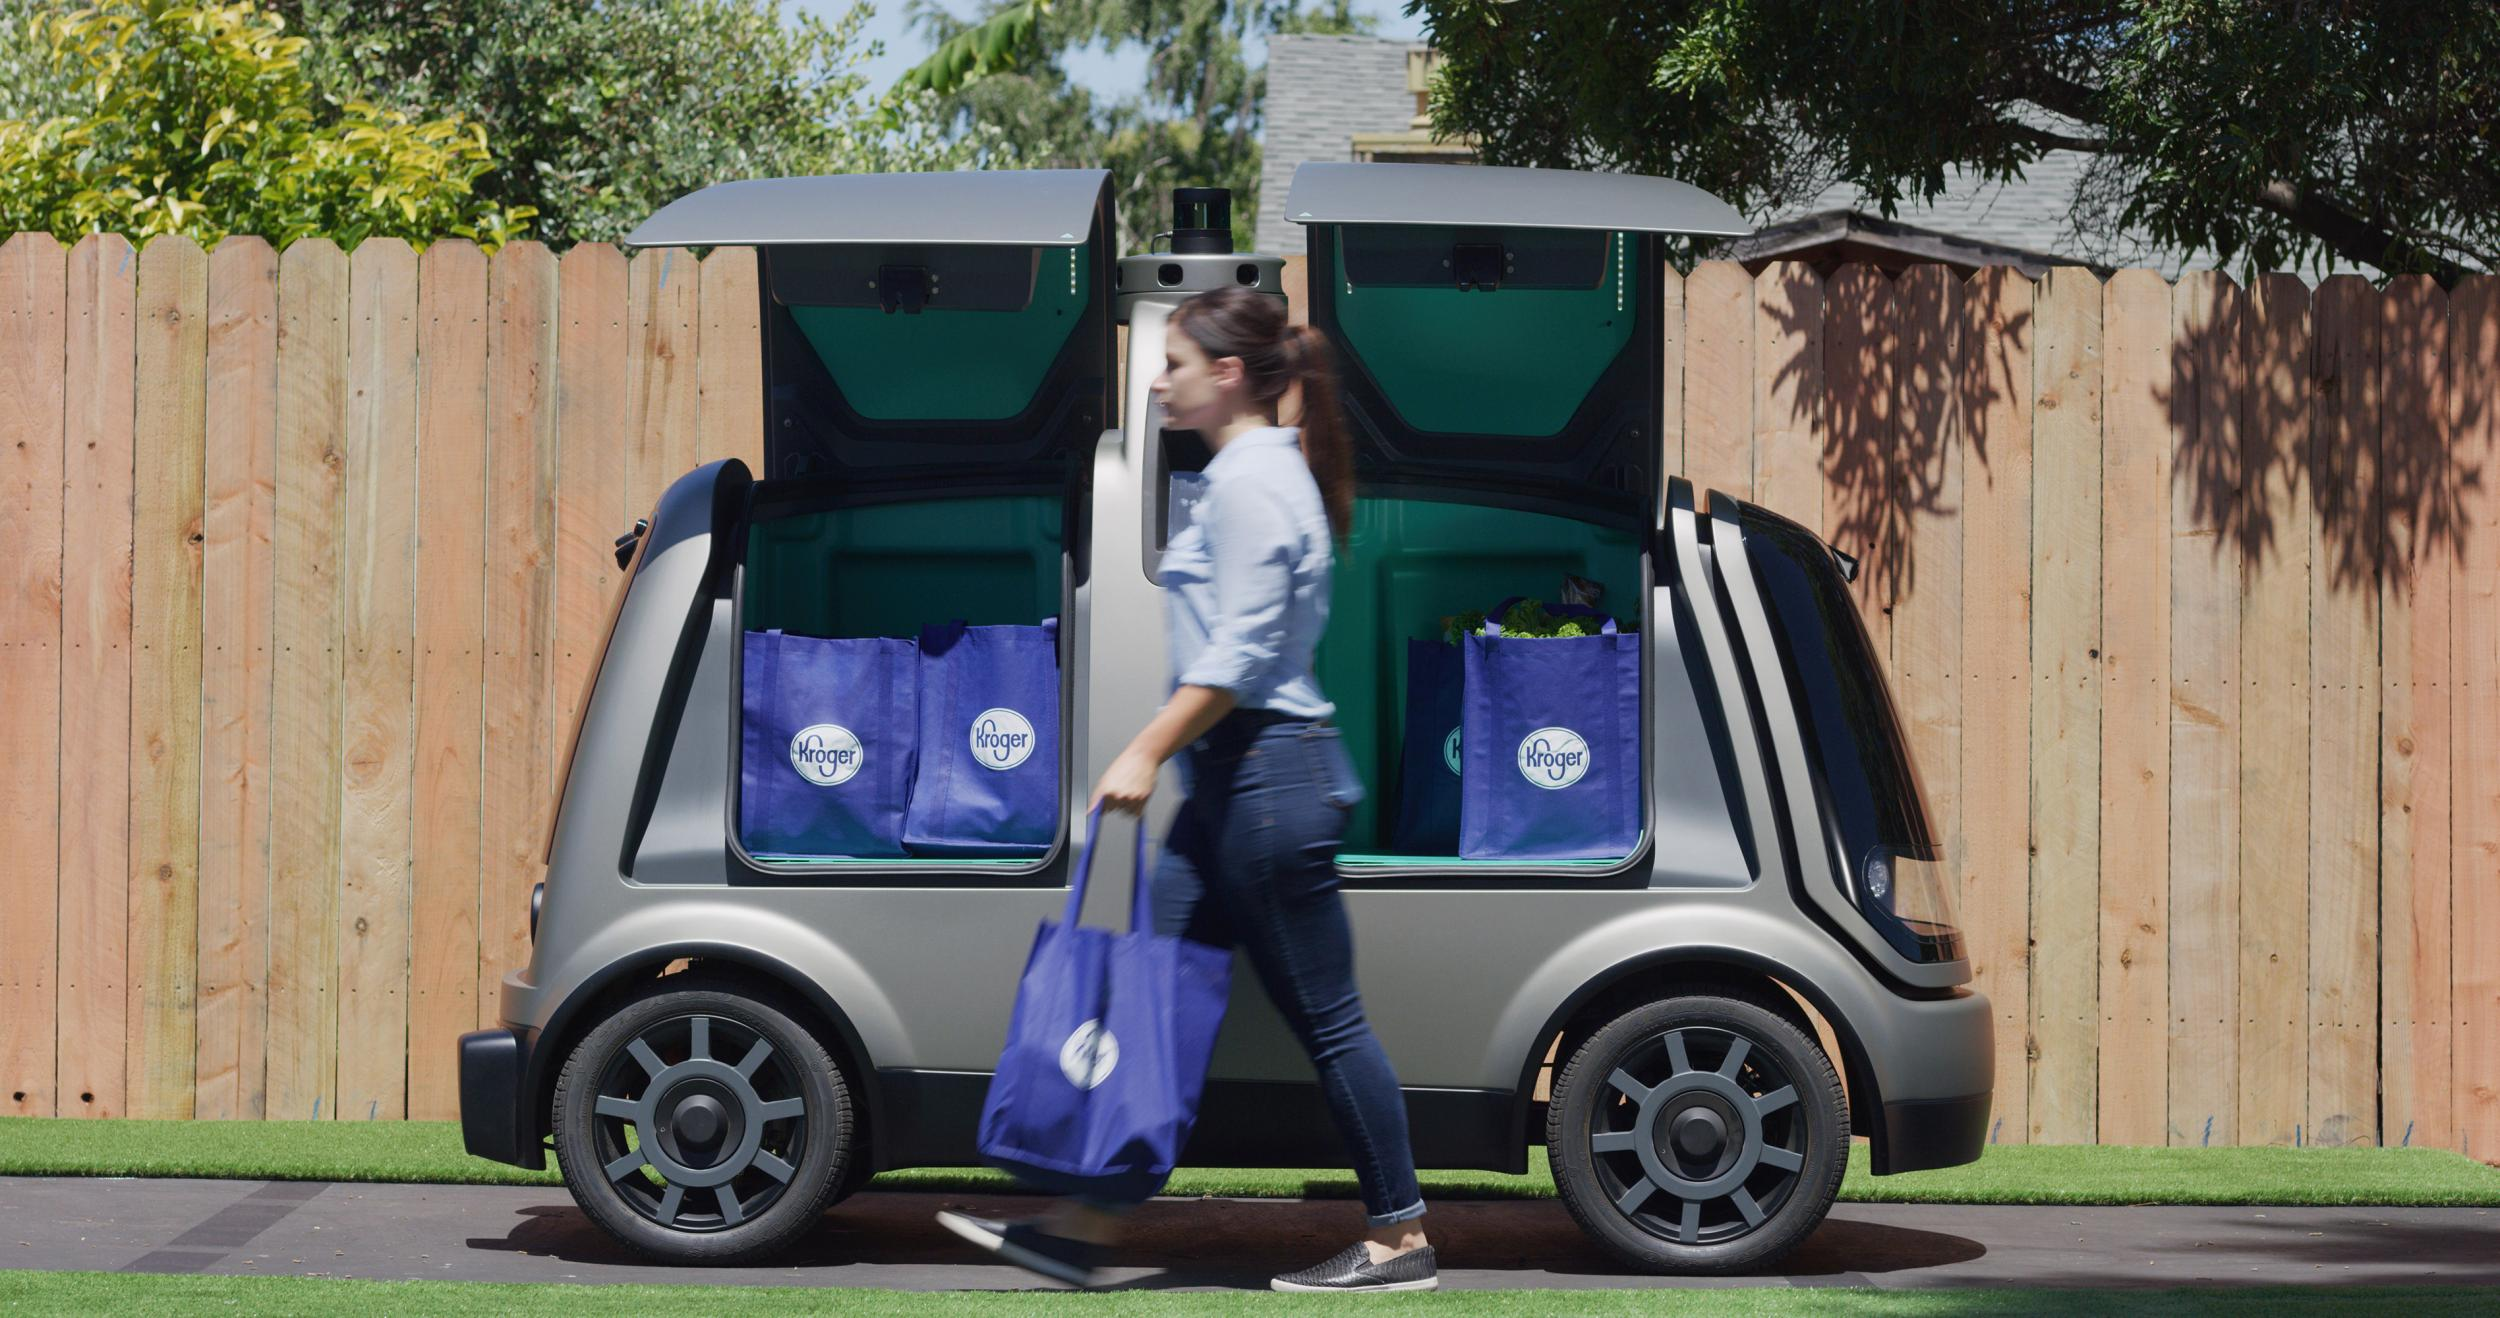 Driverless cars to transport shopping for new home delivery service